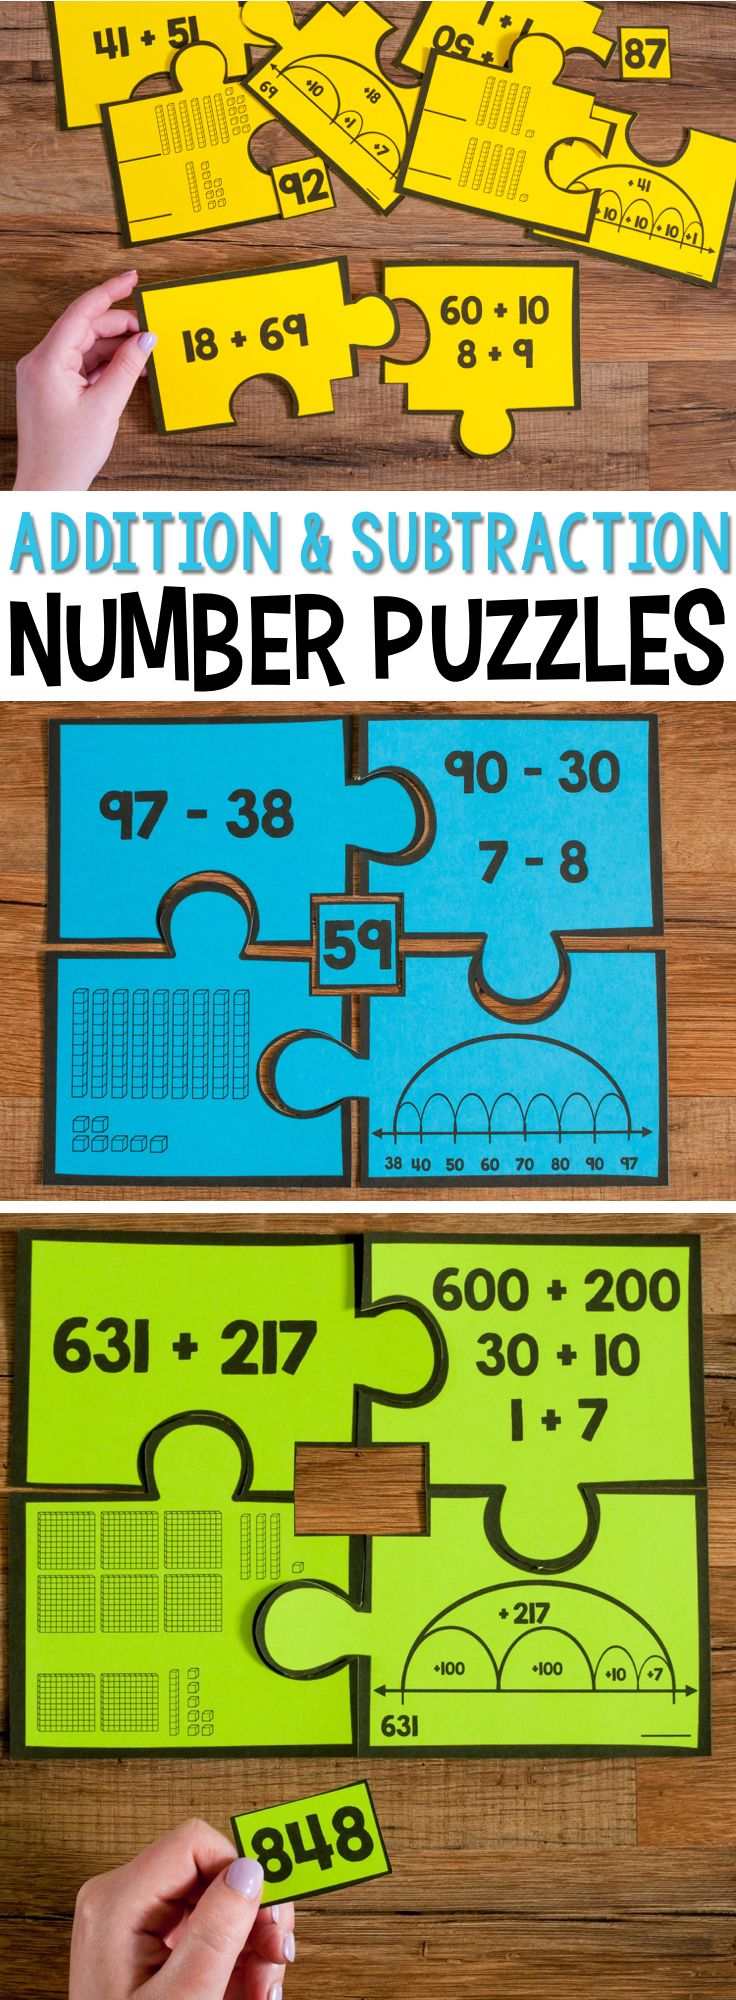 3263 best Math images on Pinterest | Teaching math, 4th grade math ...